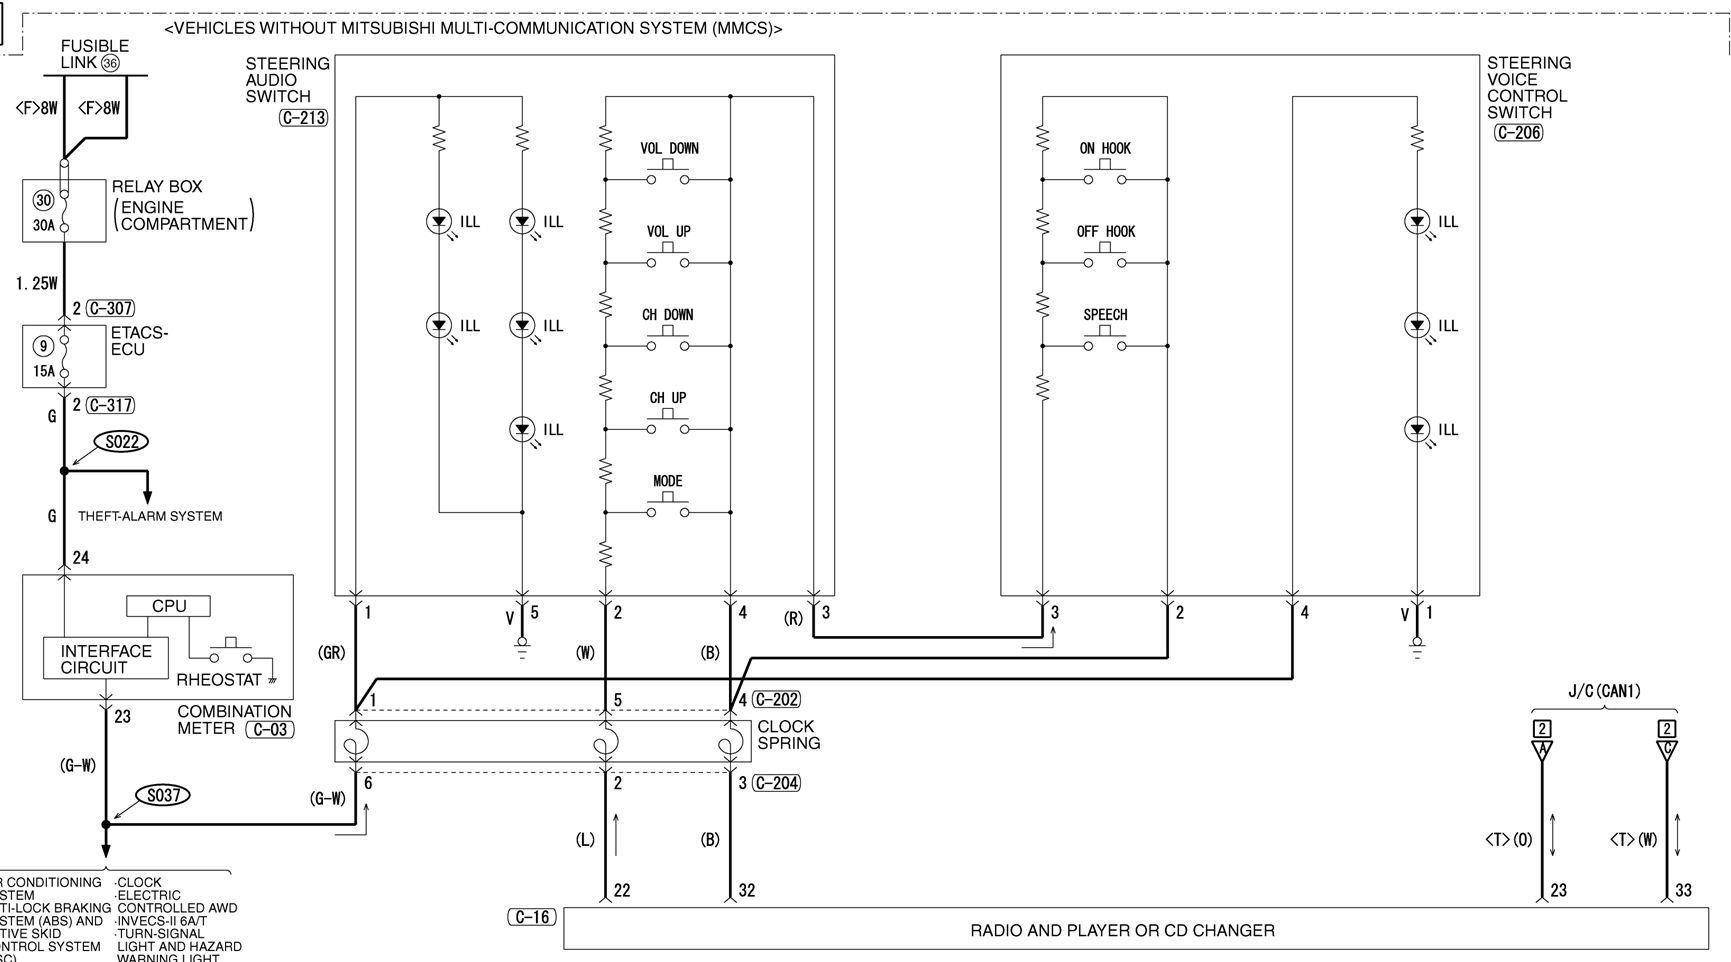 2007 mitsubishi outlander engine diagram 2007 mitsu outlander: the left-side steering wheel ... #15